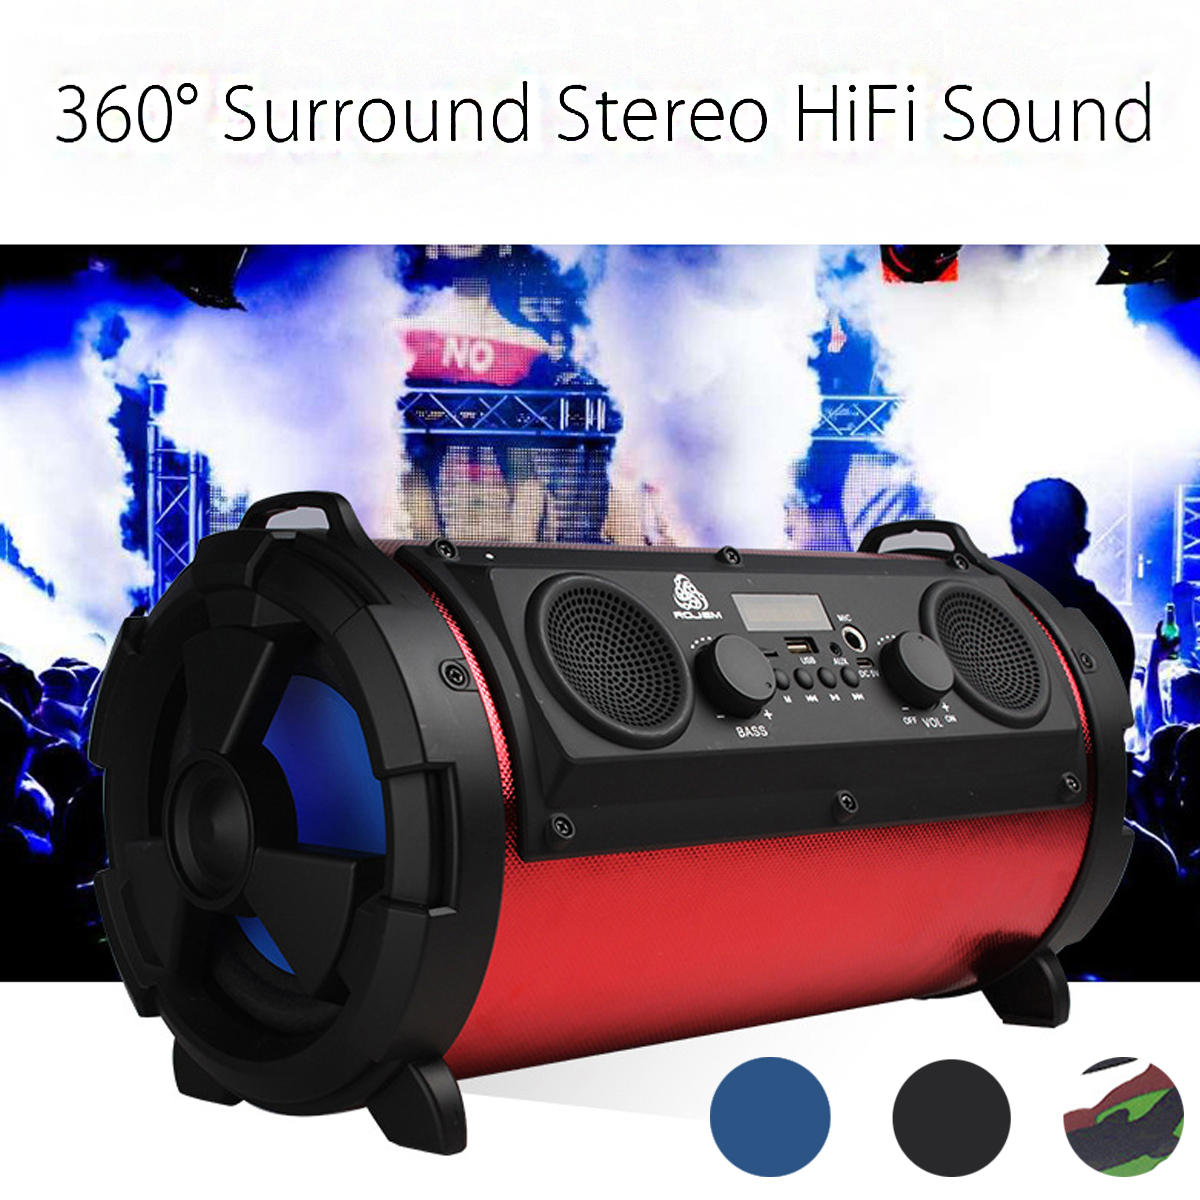 Wireless Bluetooth Speaker Outdoor Portable Subwoofer With Mic Super Bass Speakers HIFI Stereo TF Card Phone USB Loundspeaker wireless portable bluetooth speakers skeleton head skull stereo super bass subwoofer hi fi speaker creative gift for smart phone